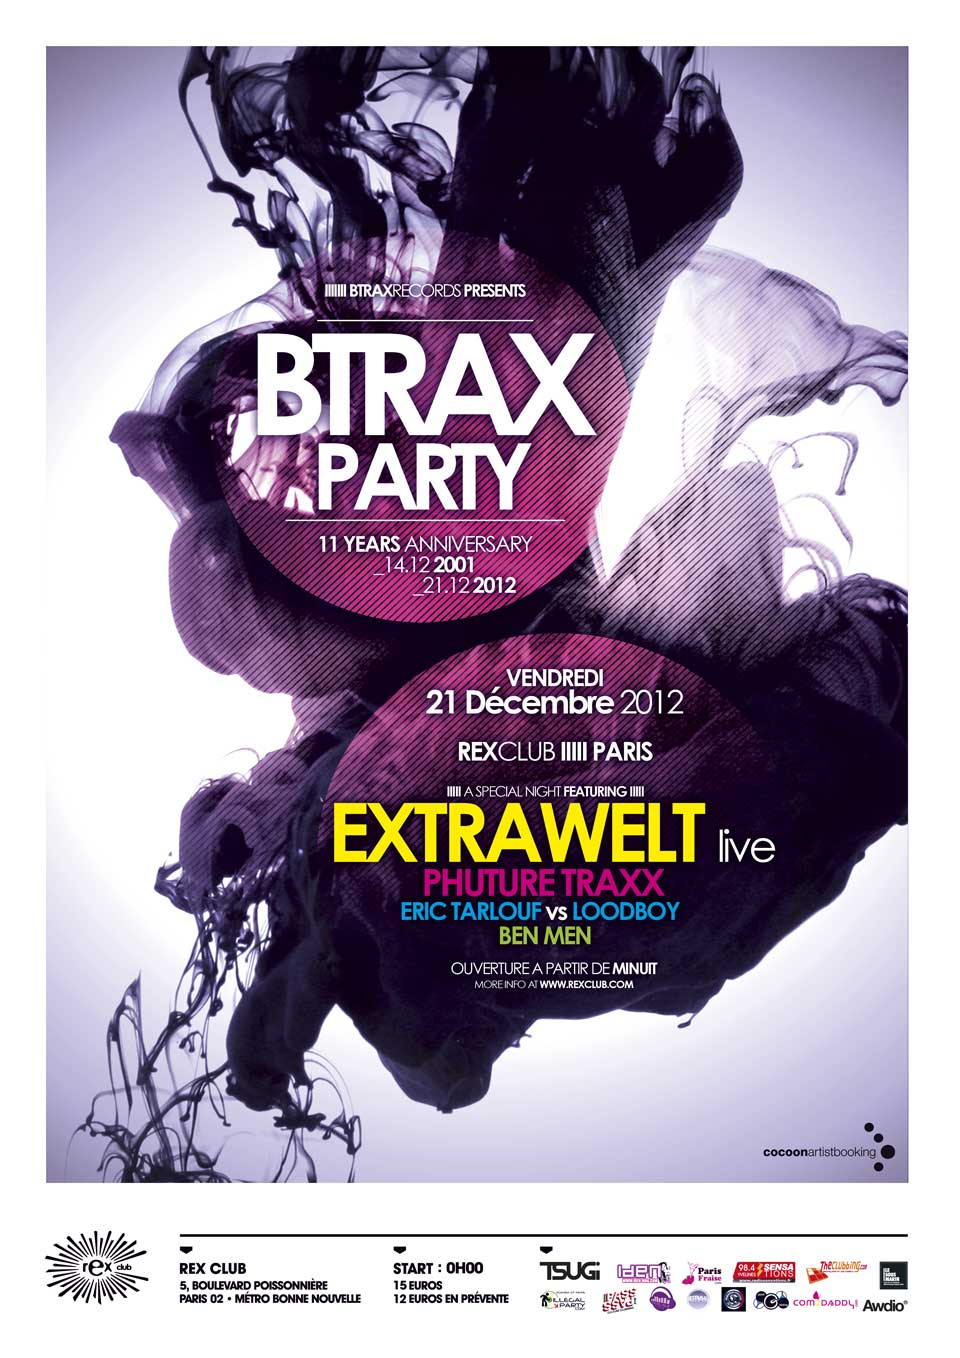 BTRAX party 21.12.2012